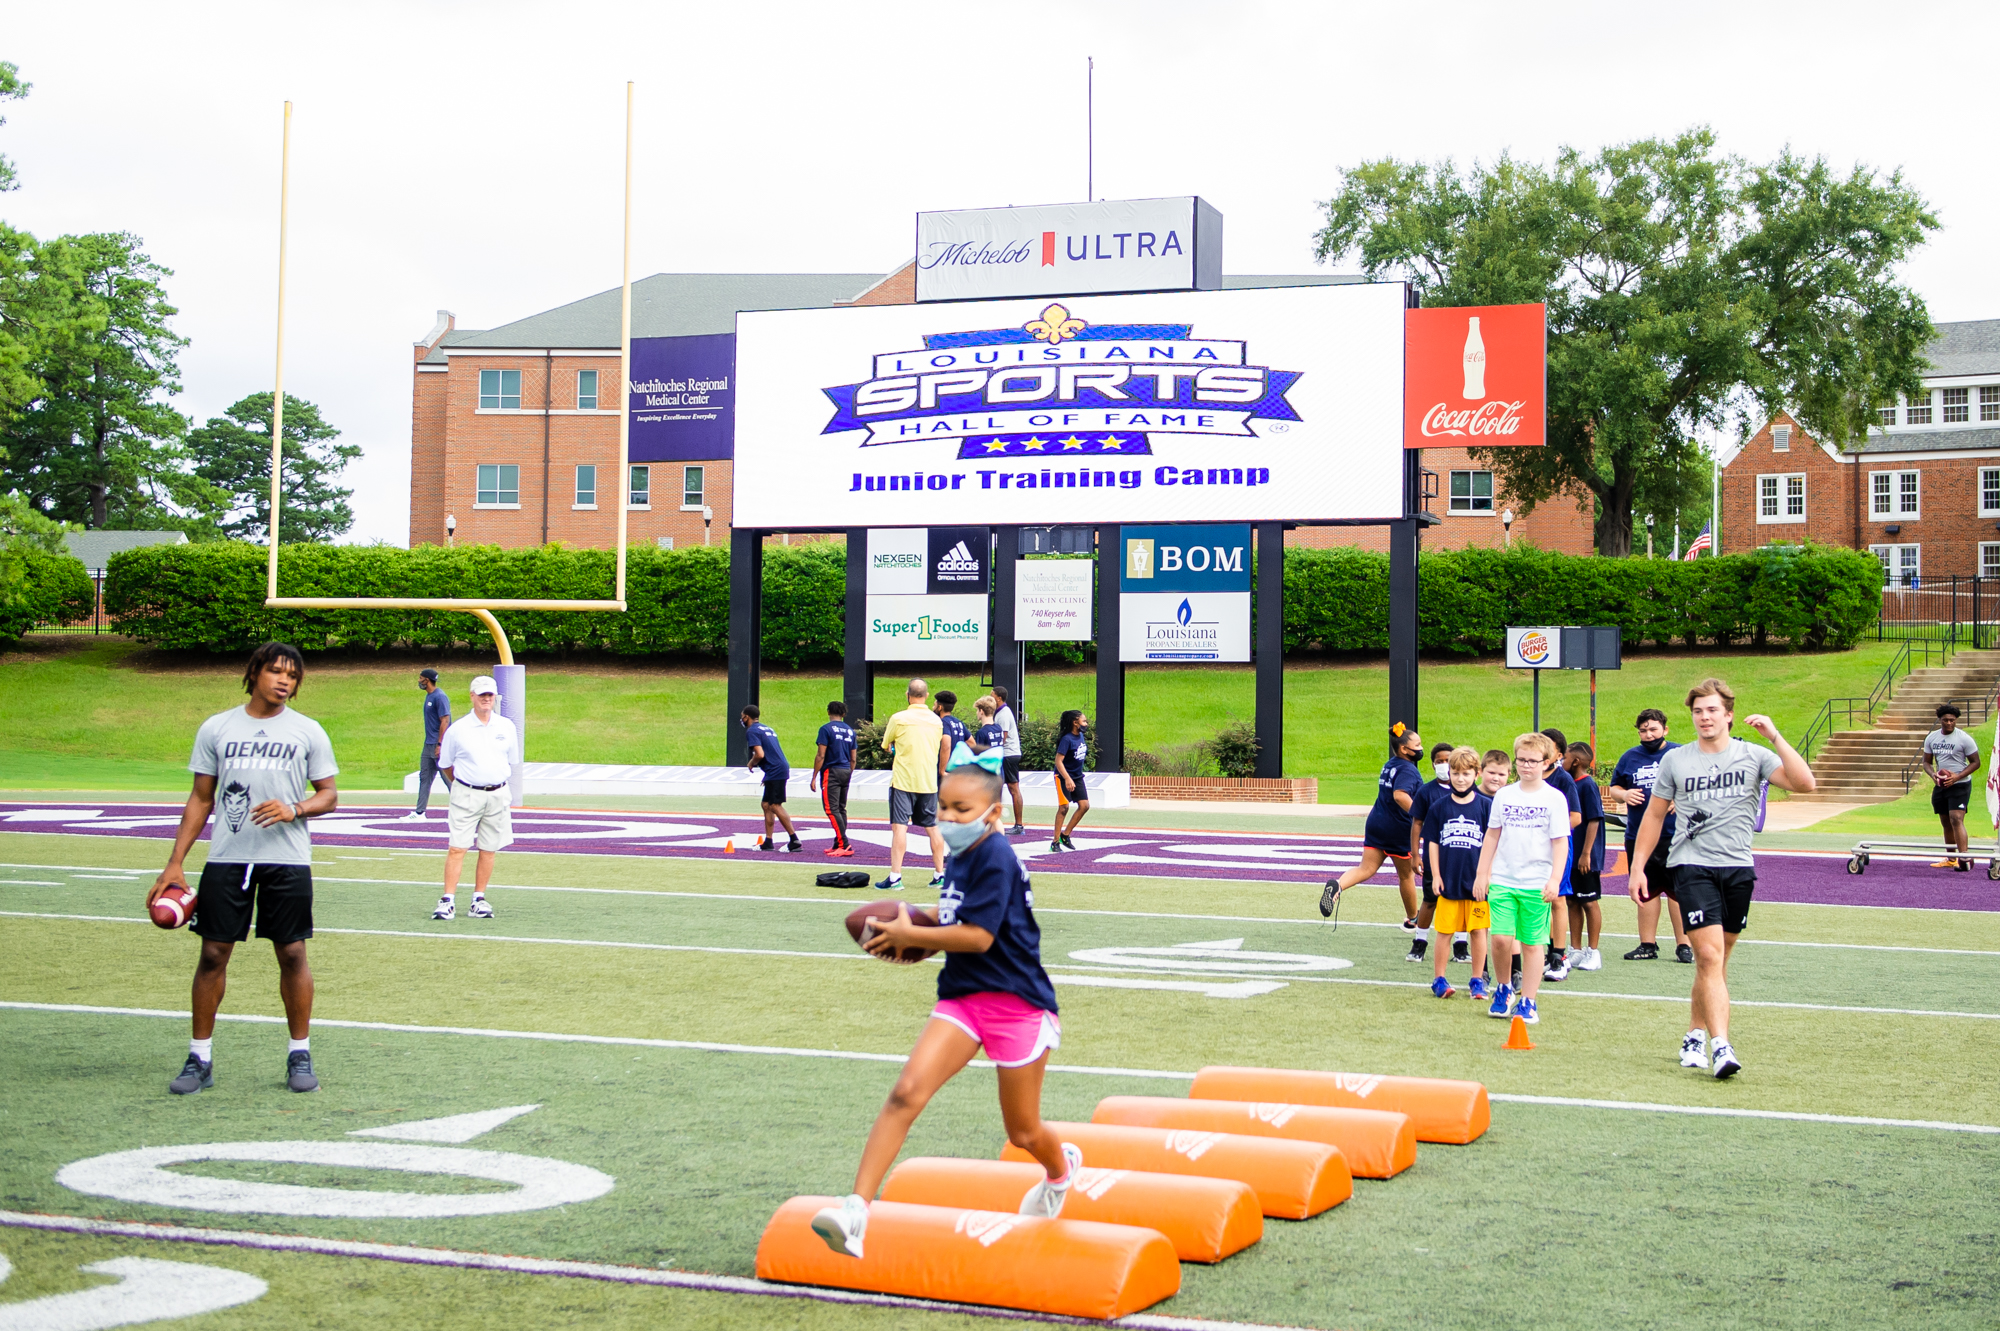 Video: 2021 Junior Training Camp presented by Natchitoches Regional Medical Center